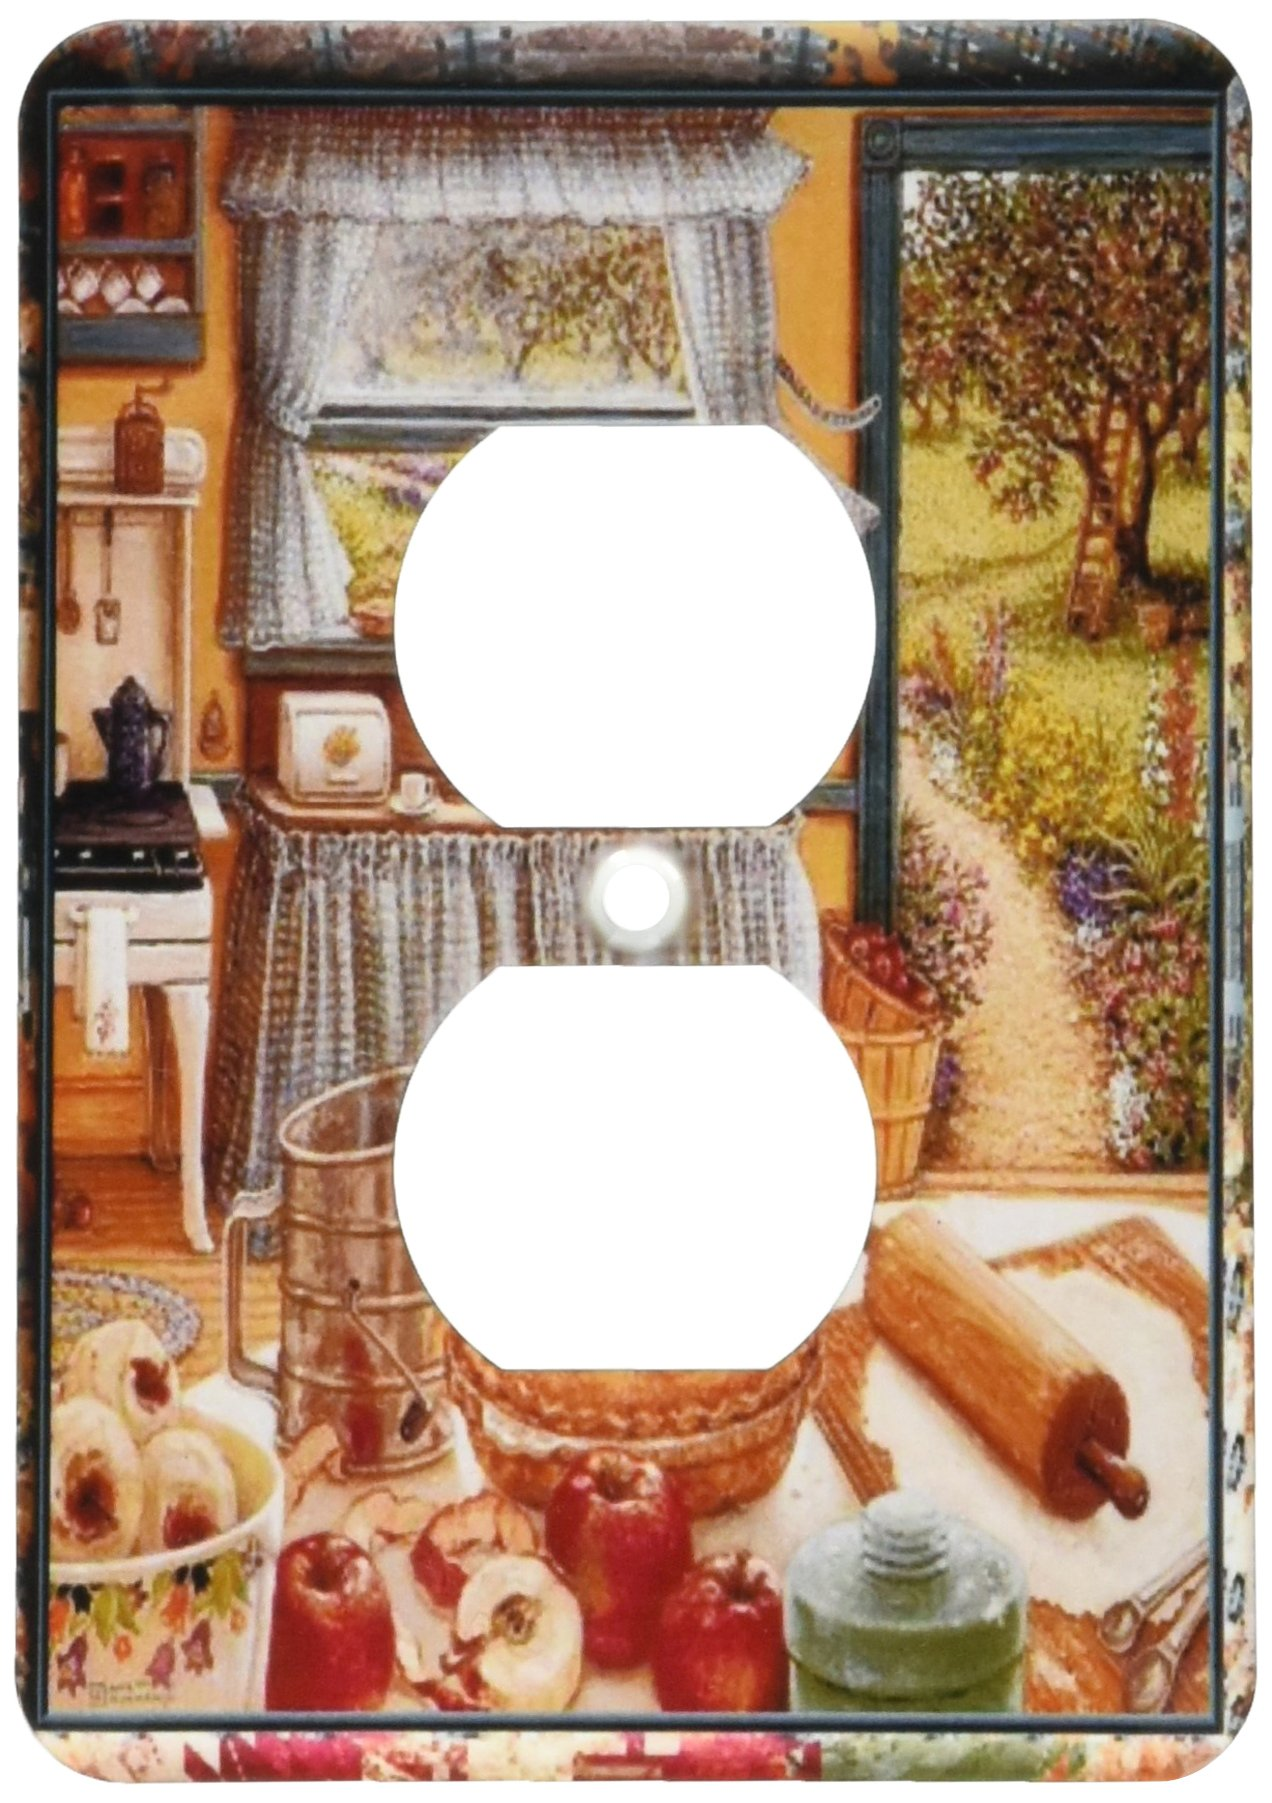 3dRose lsp_167215_6 Home Cooking and Country Art, Apple Pie and Kitchen Art Light Switch Cover